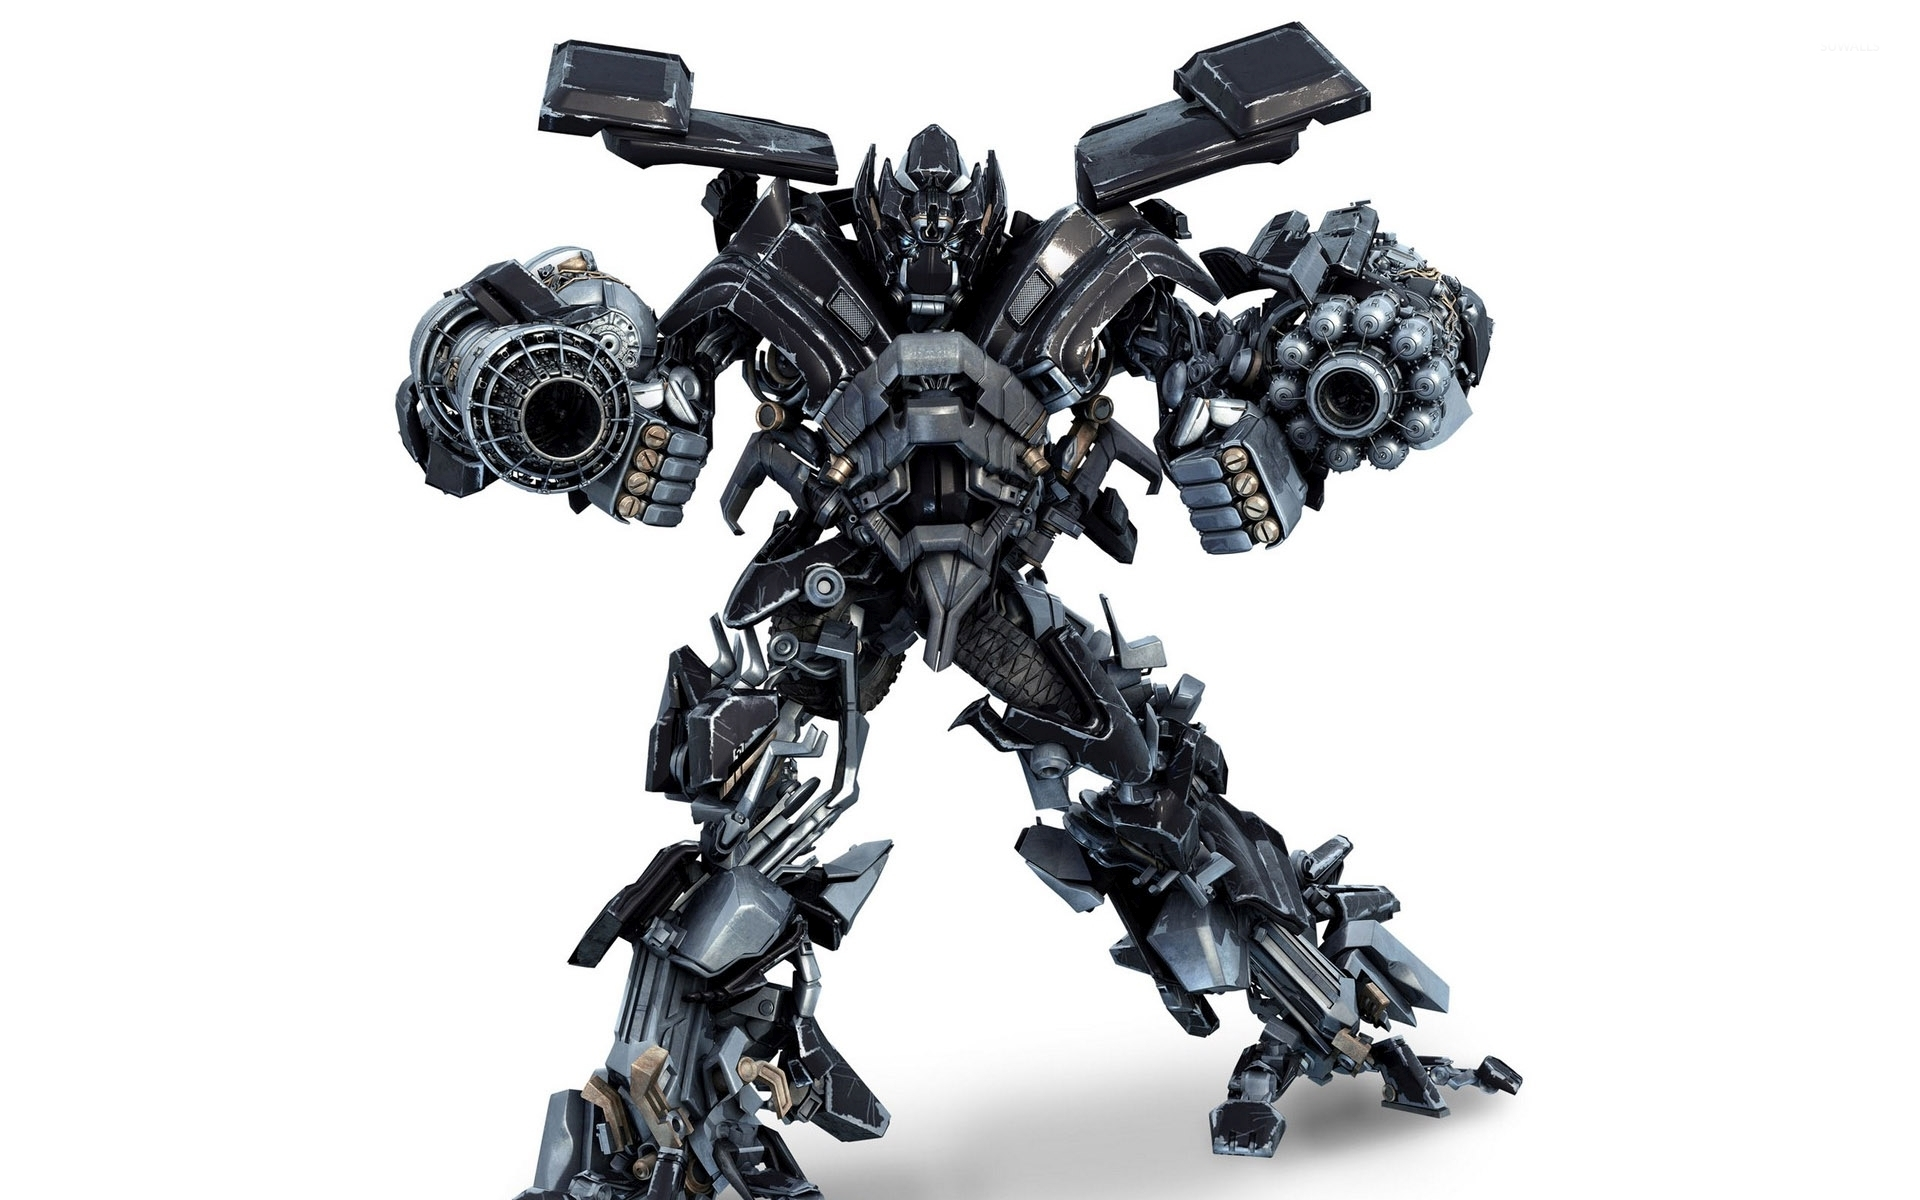 TRANSFORMERS 3 DARK OF THE MOON IRONHIDE ACTION FIGURE VOYAGER NEW ...